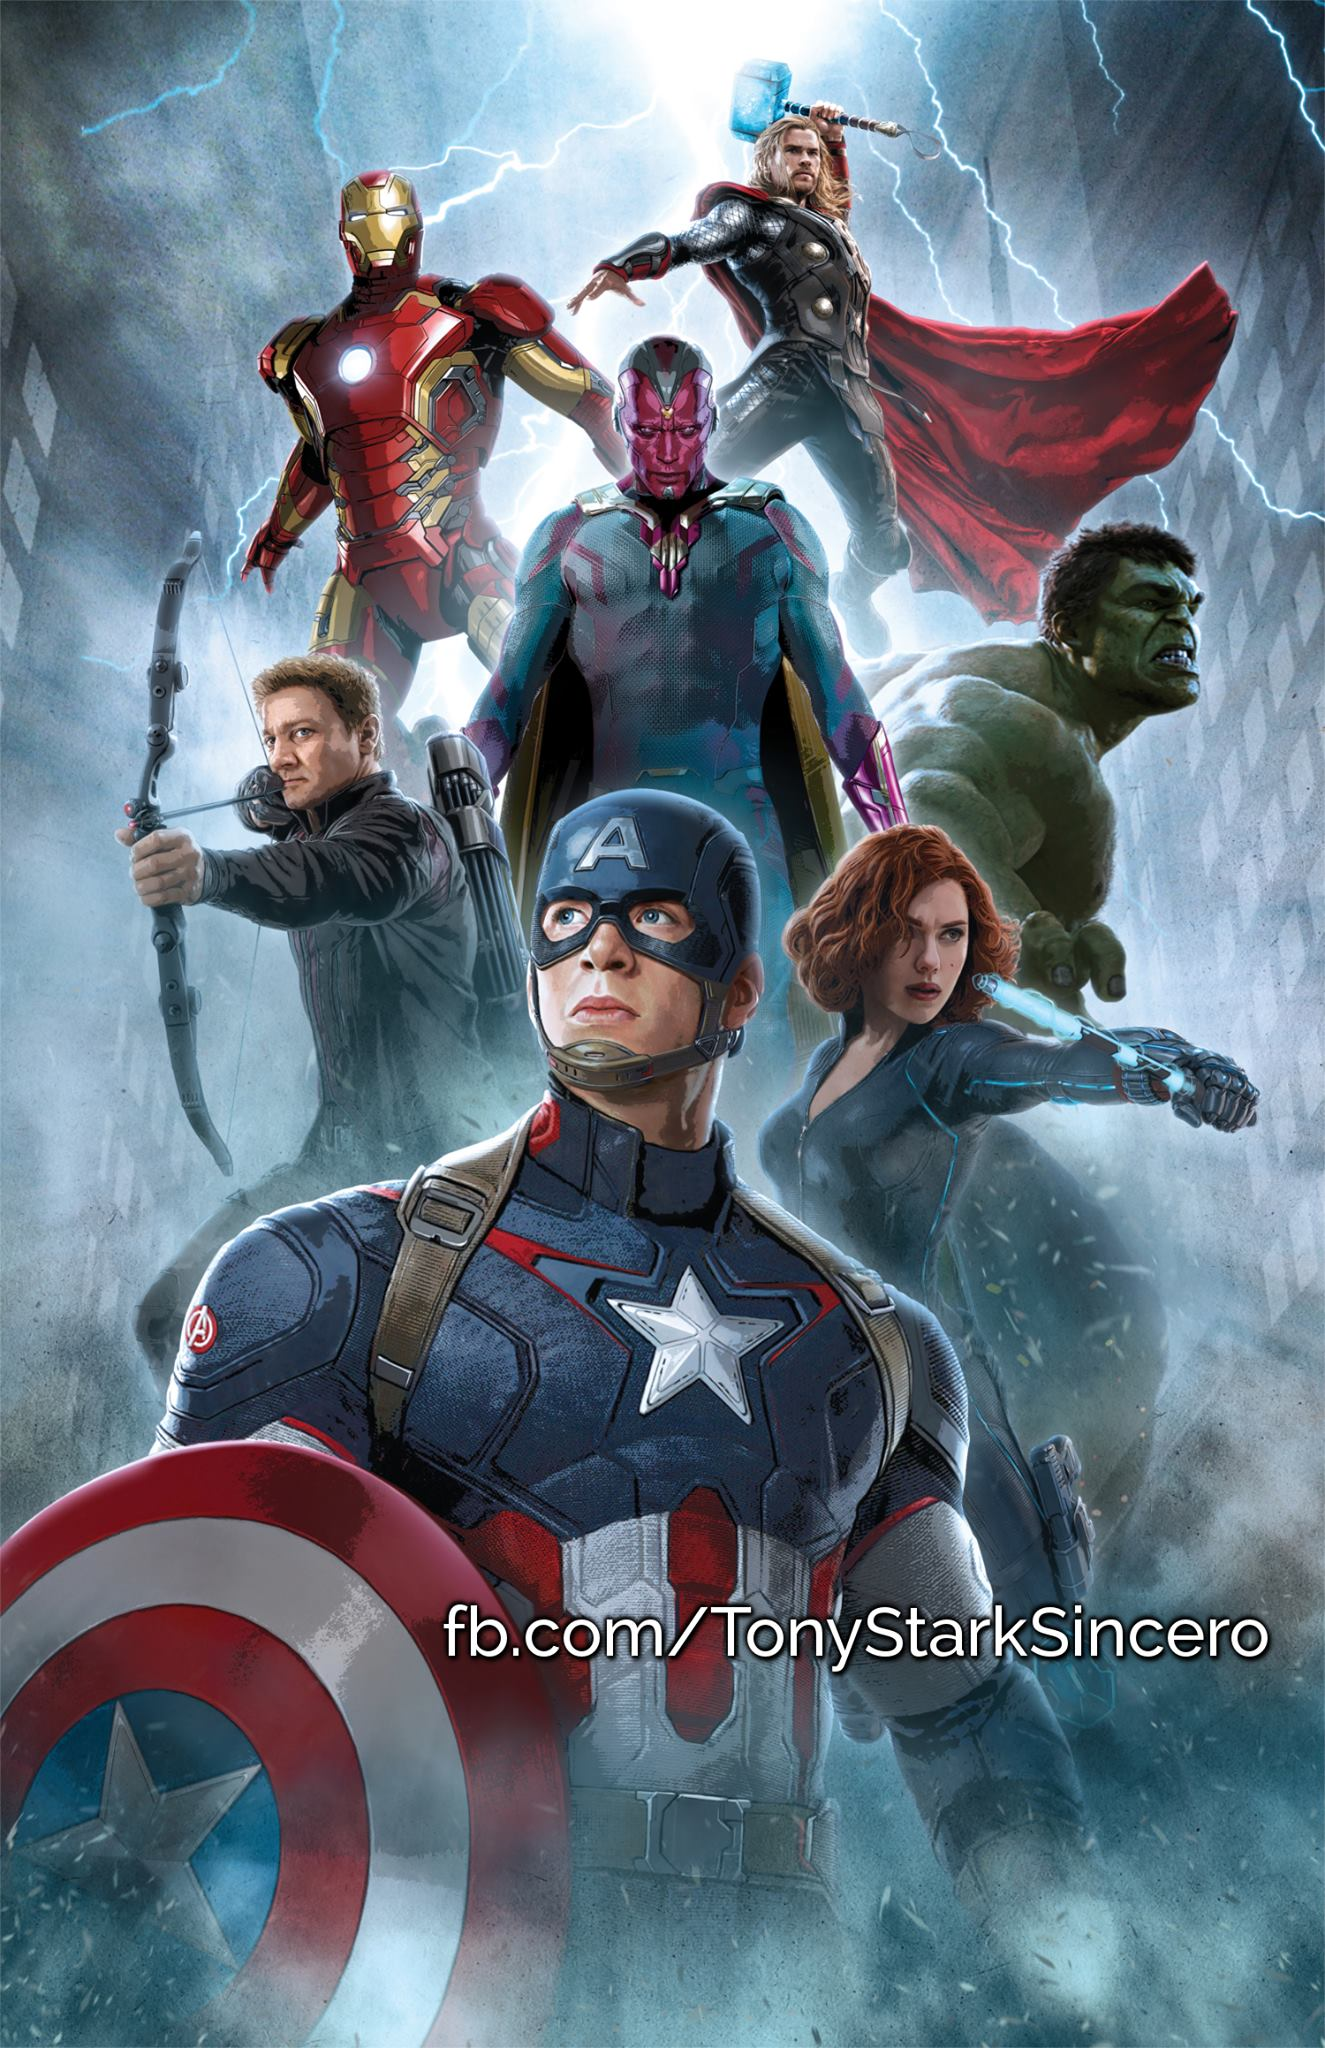 Avengers Age Of Ultron Promo Art 7 Blackfilmcomread